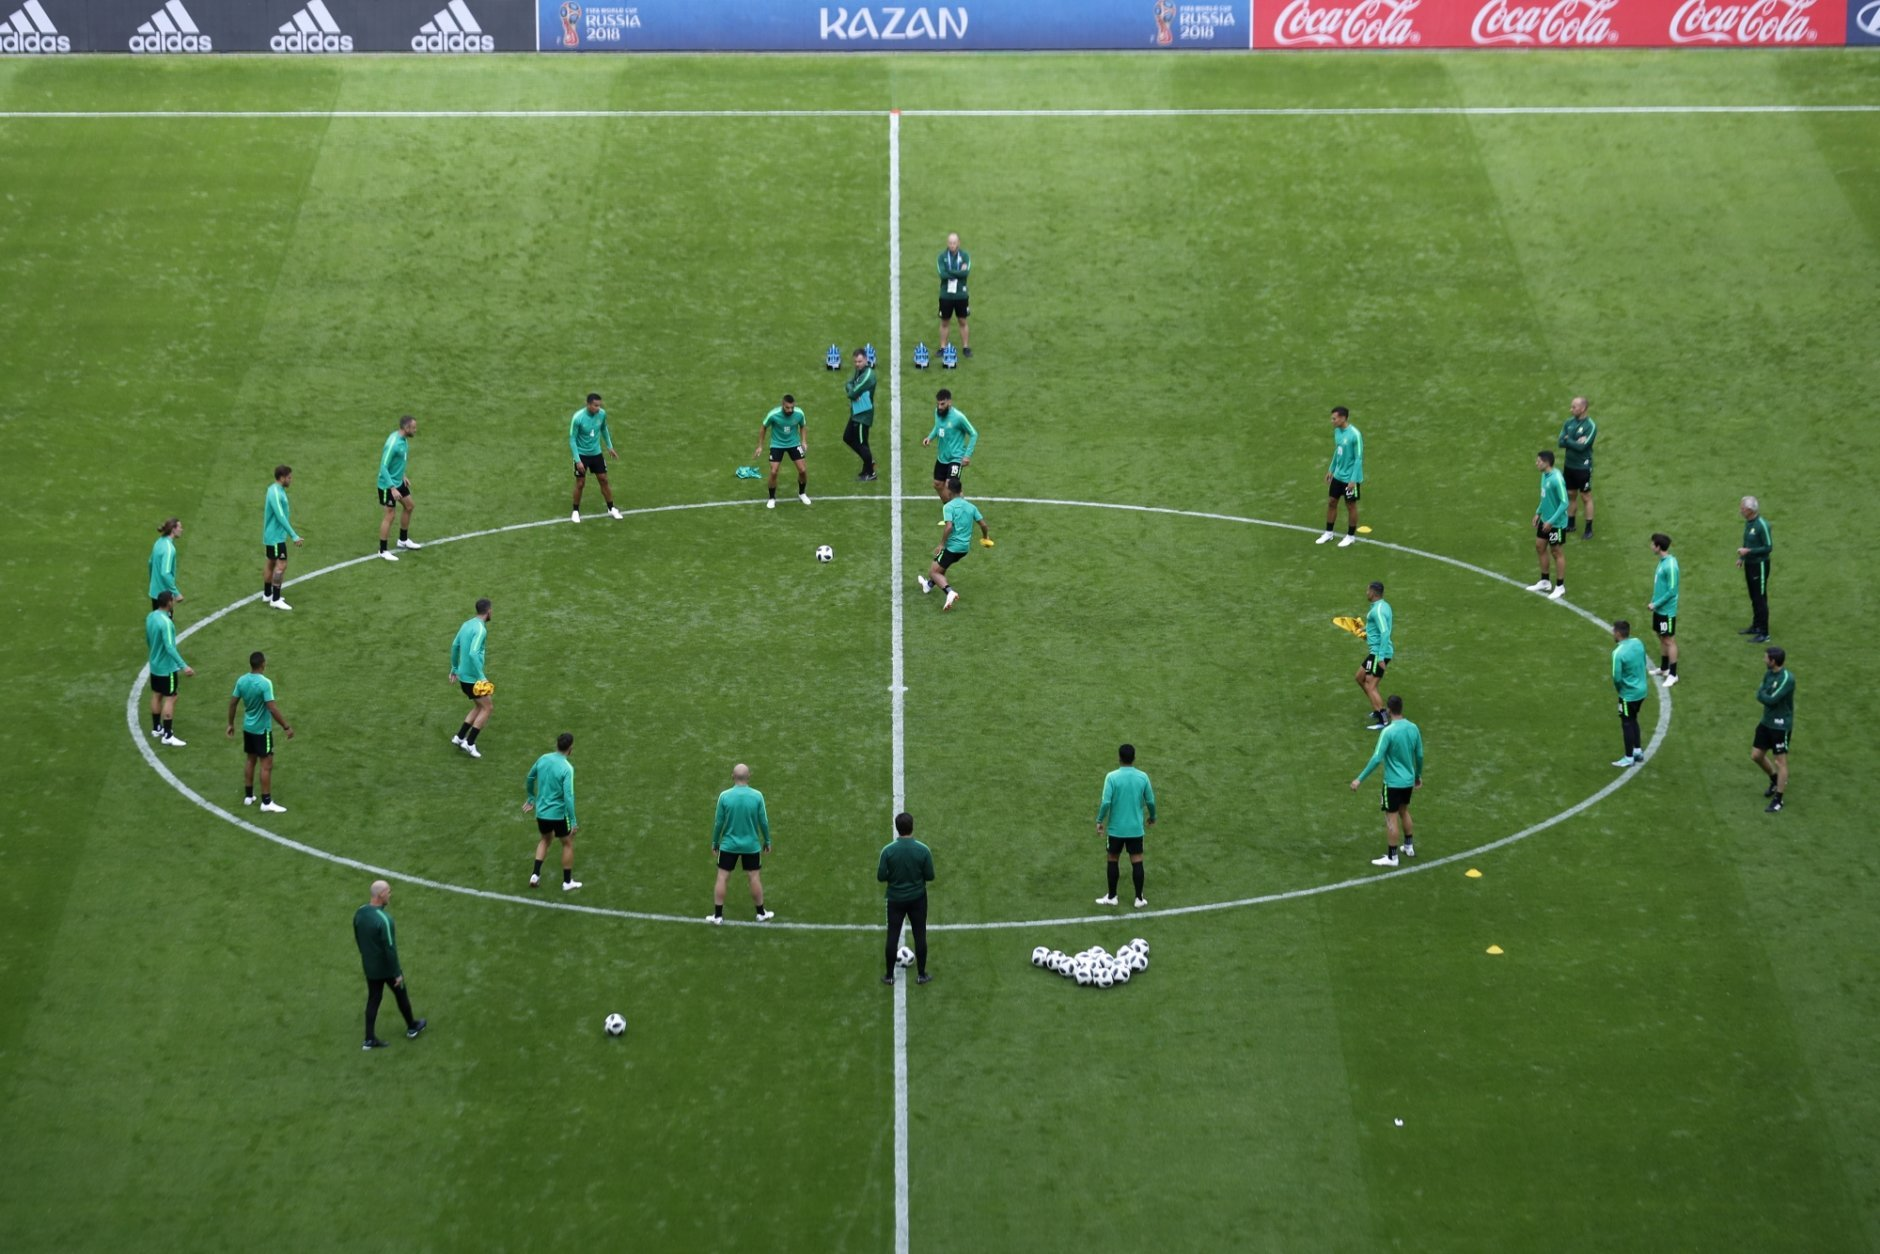 Australia's players train during Australia's official training for the group C match between France and Australia at the 2018 soccer World Cup in the Kazan Arena in Kazan, Russia, Friday, June 15, 2018. (AP Photo/Hassan Ammar)